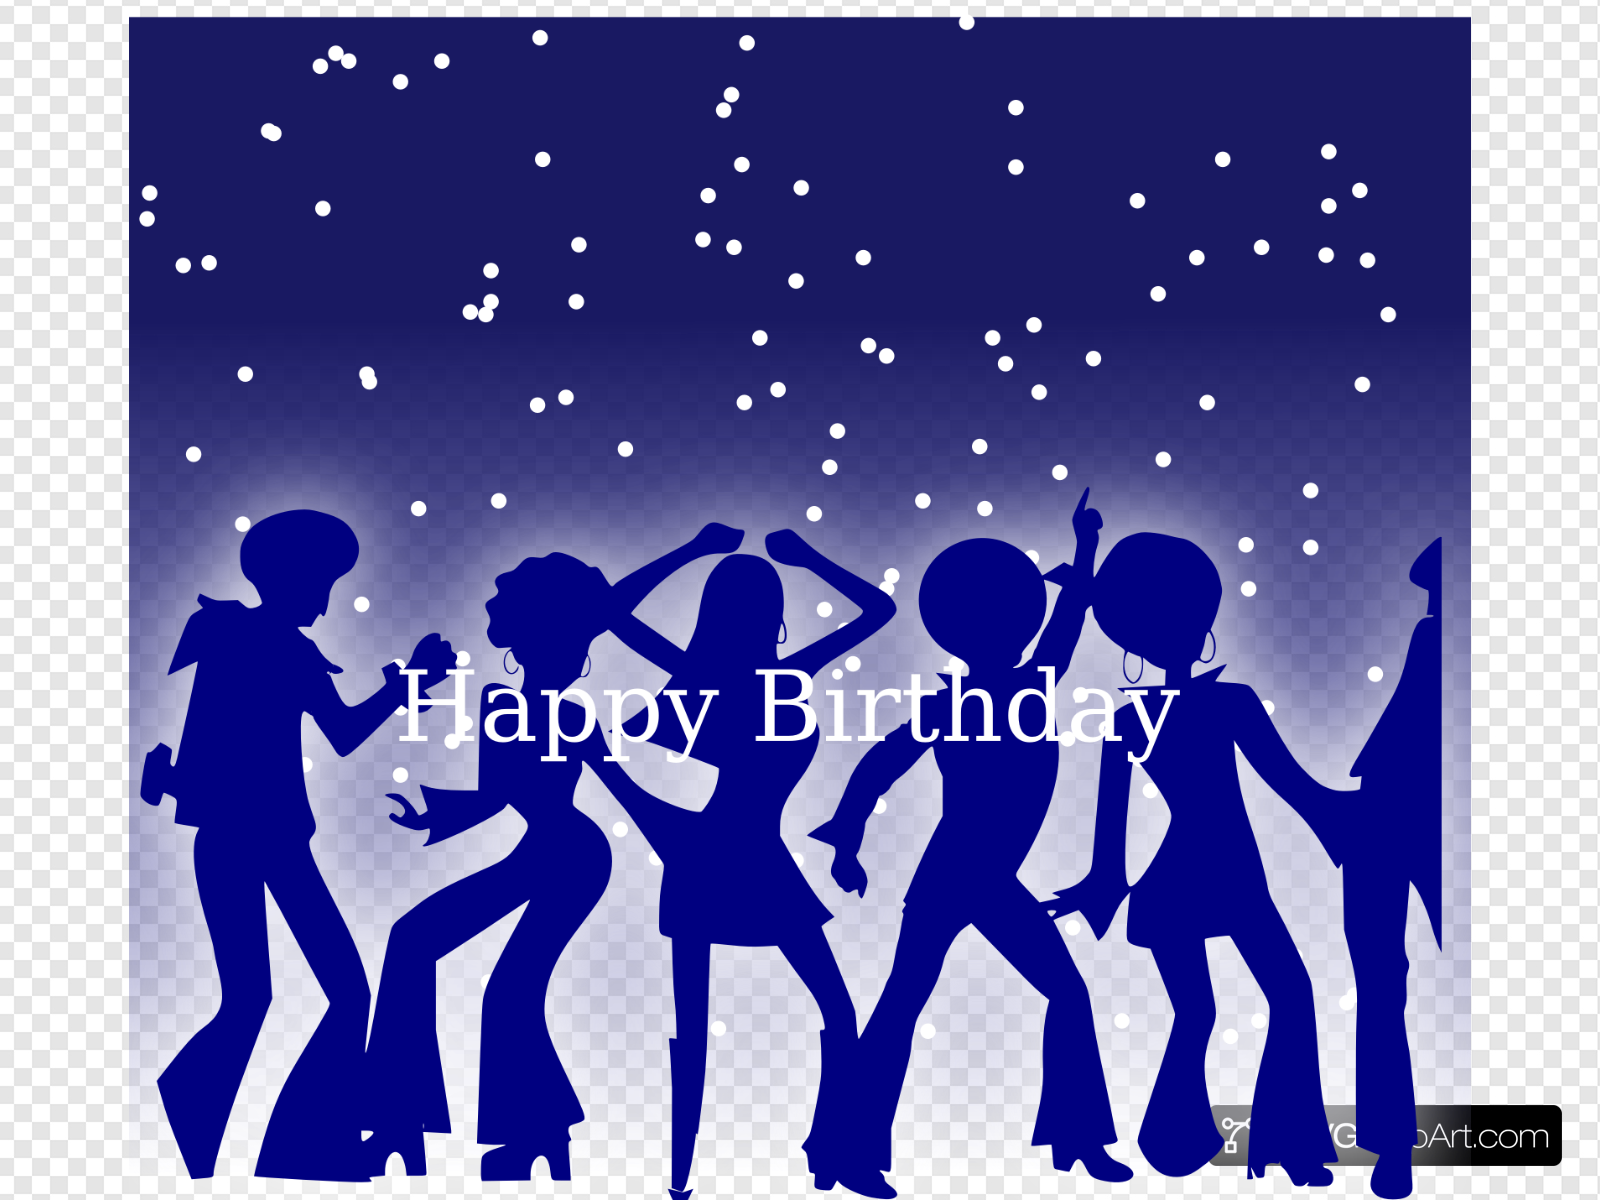 70s Birthday Clip art, Icon and SVG.